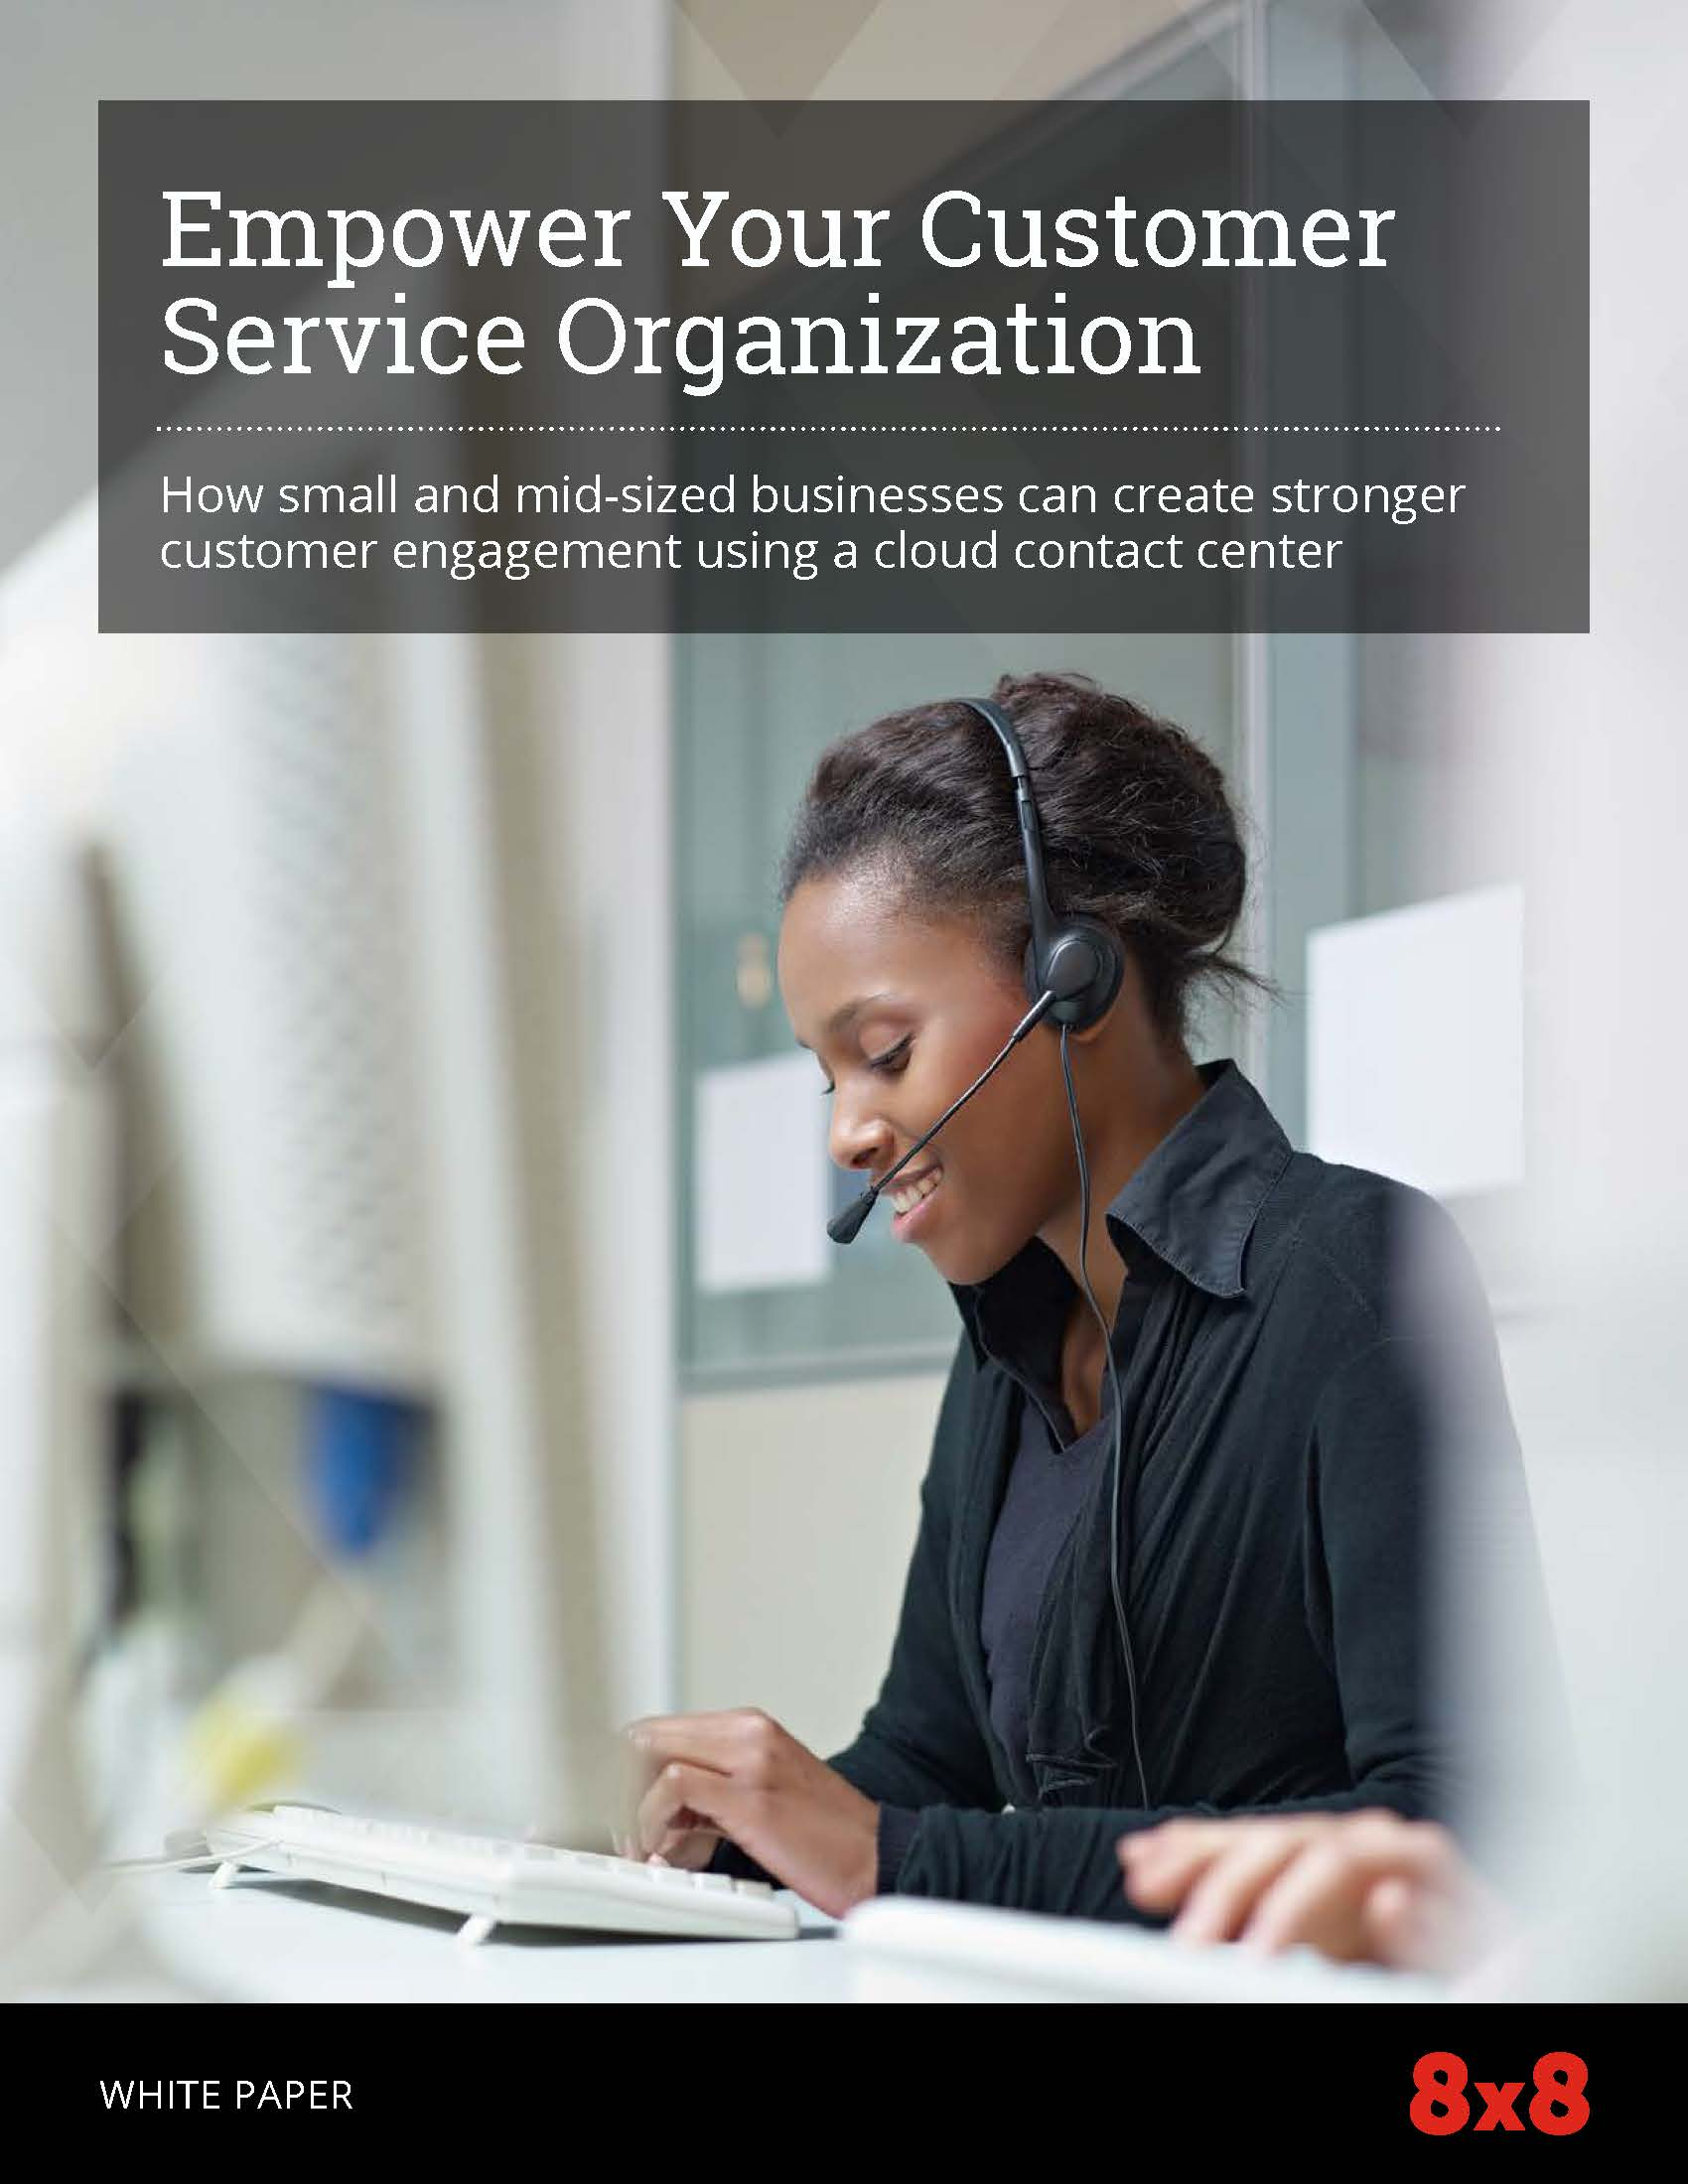 empower-your-customer-service-organization